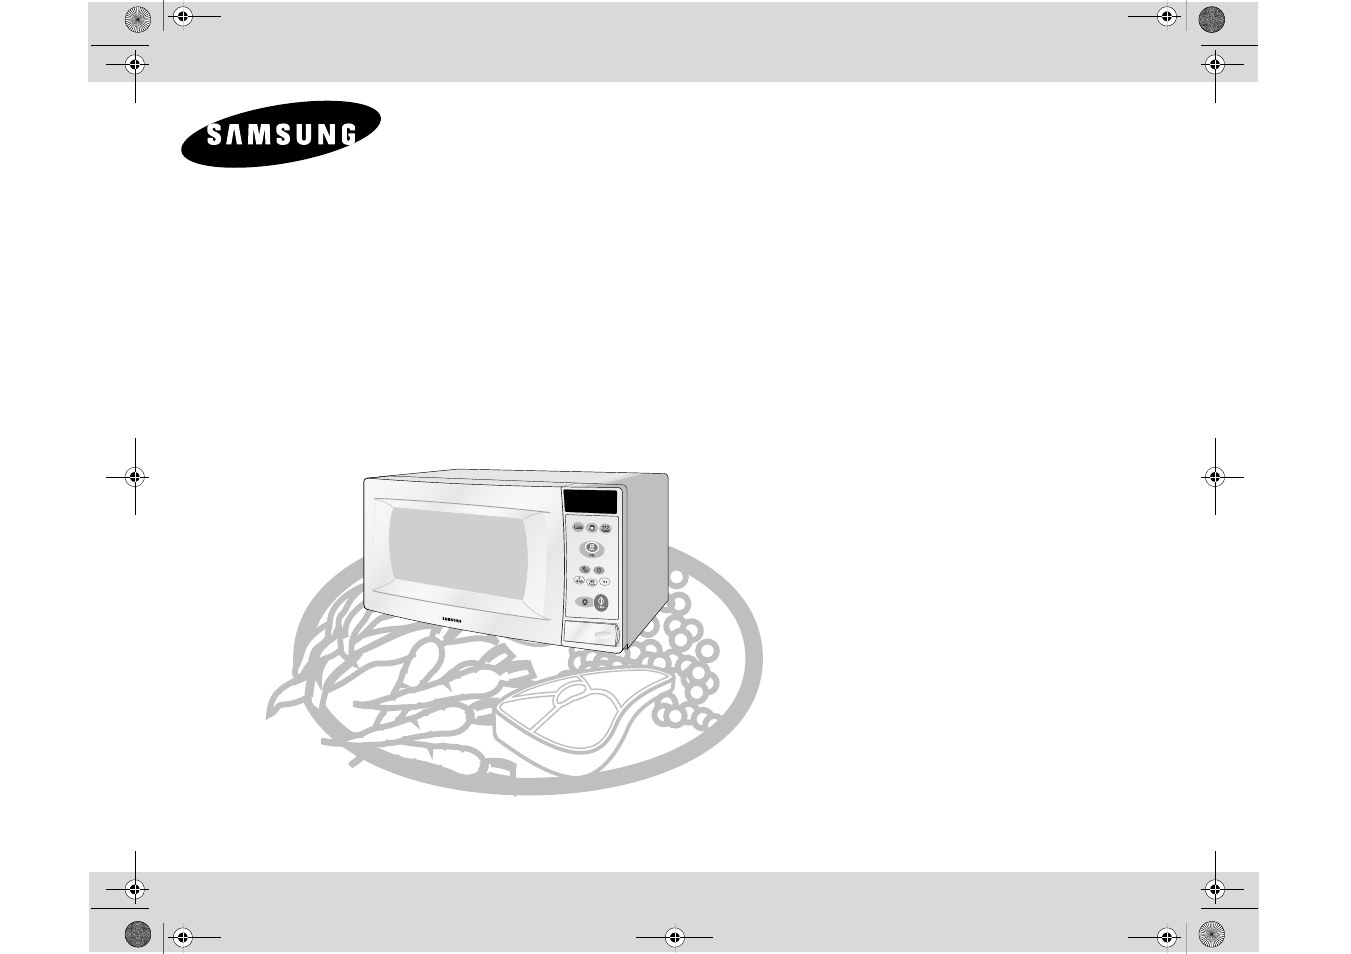 Samsung Microwave Me21h706mqs Wiring Diagram Diagrams For Oven Dishwasher Service Manual